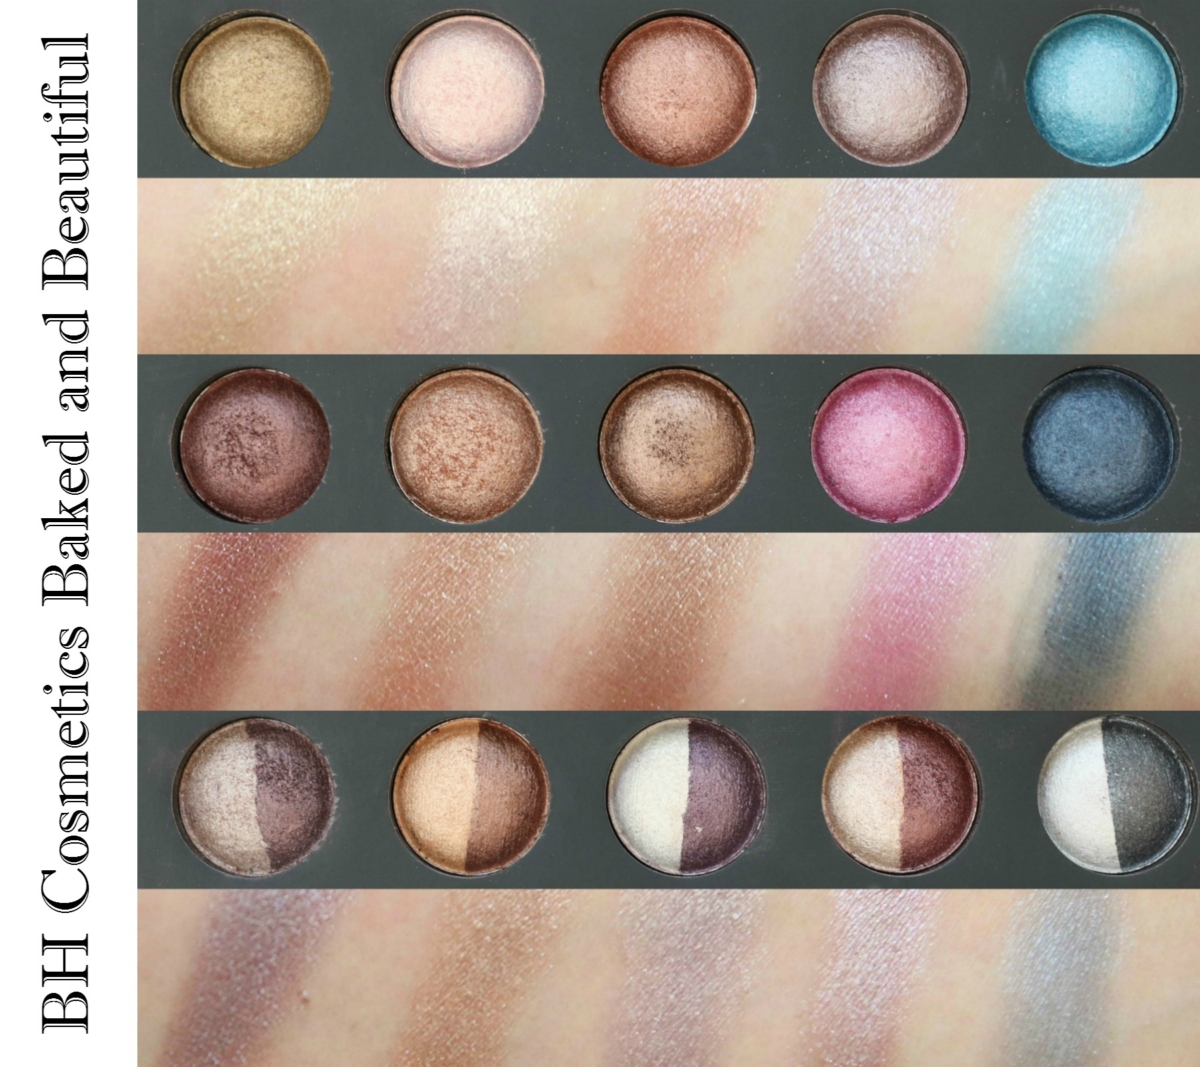 BH Cosmetics Baked and Beautiful Eyeshadow Palette Review and Swatches